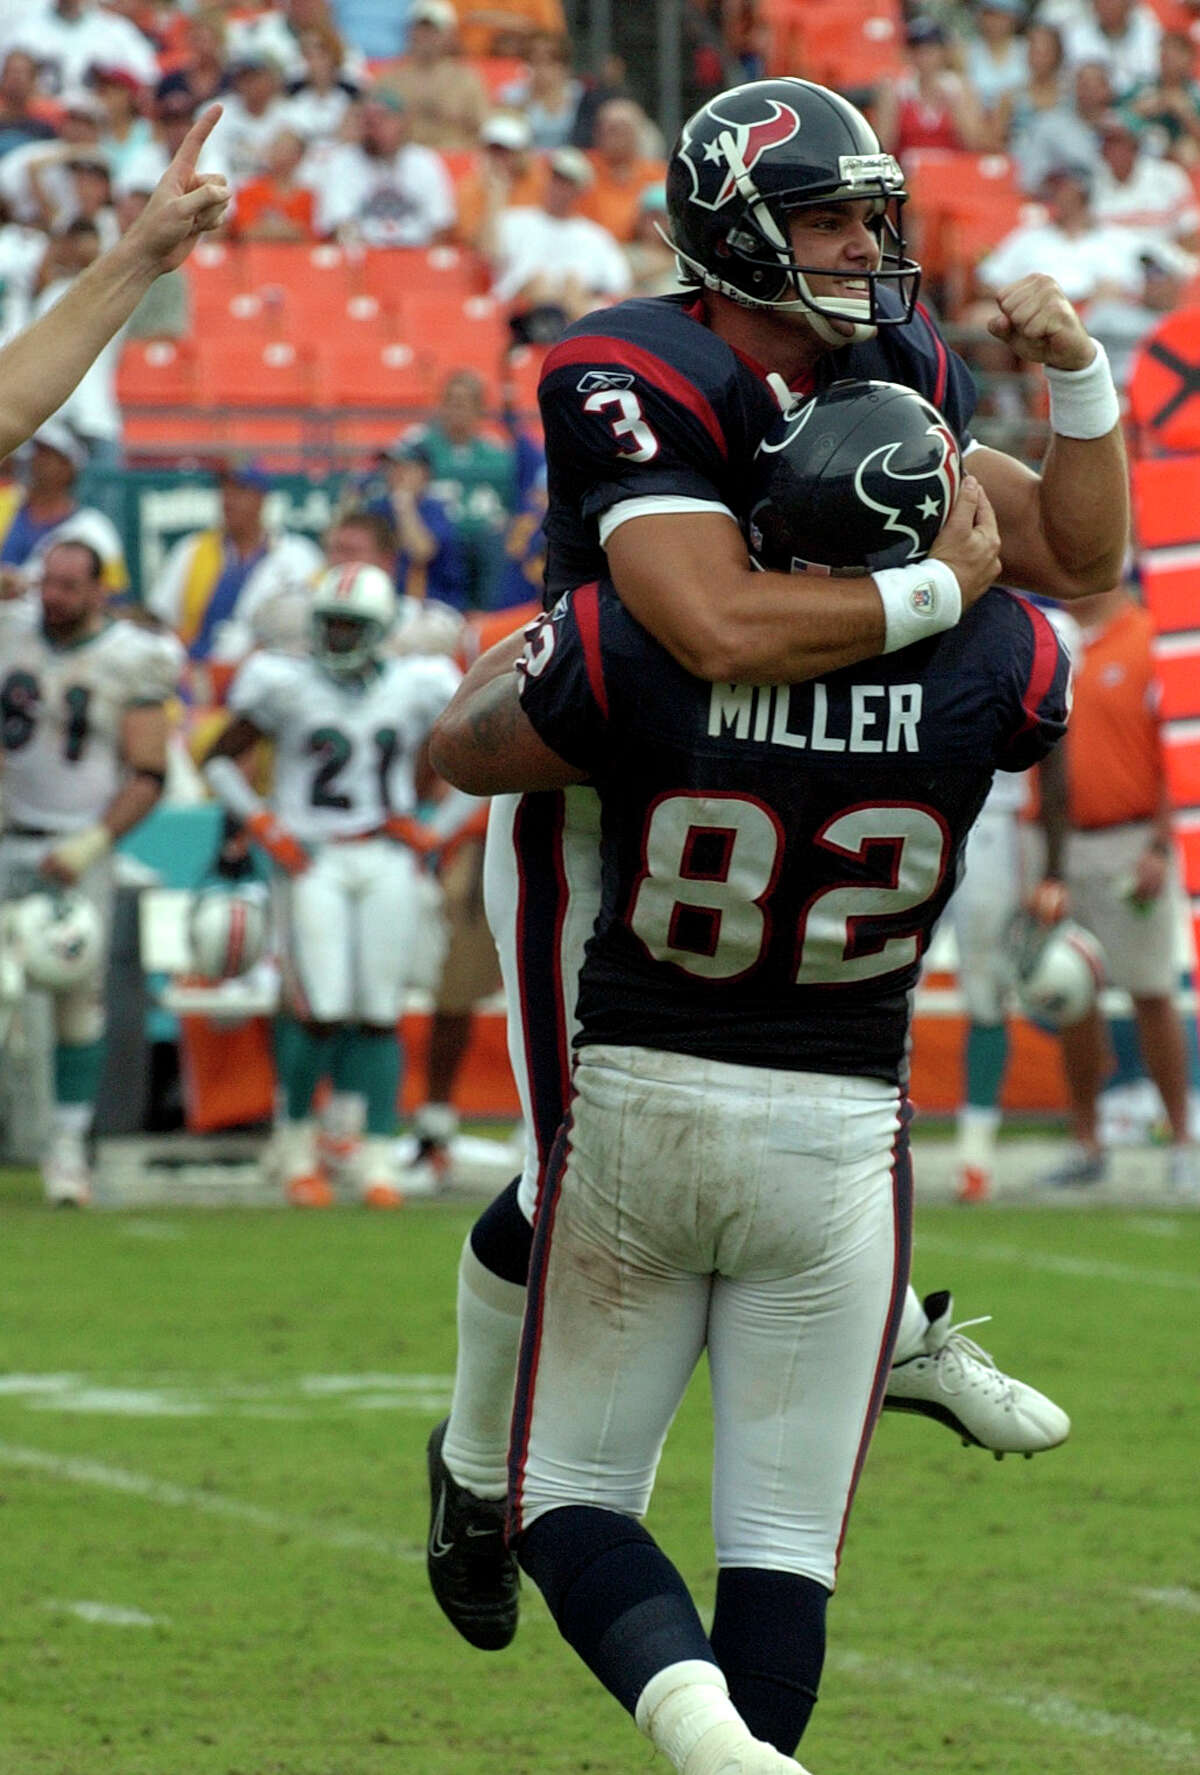 Sept. 7, 2003: Texans 21, Dolphins 20 The Texans pulled off another upset in their second season opener, beating the Dolphins on Kris Brown's 35-yard field goal with 25 seconds left.